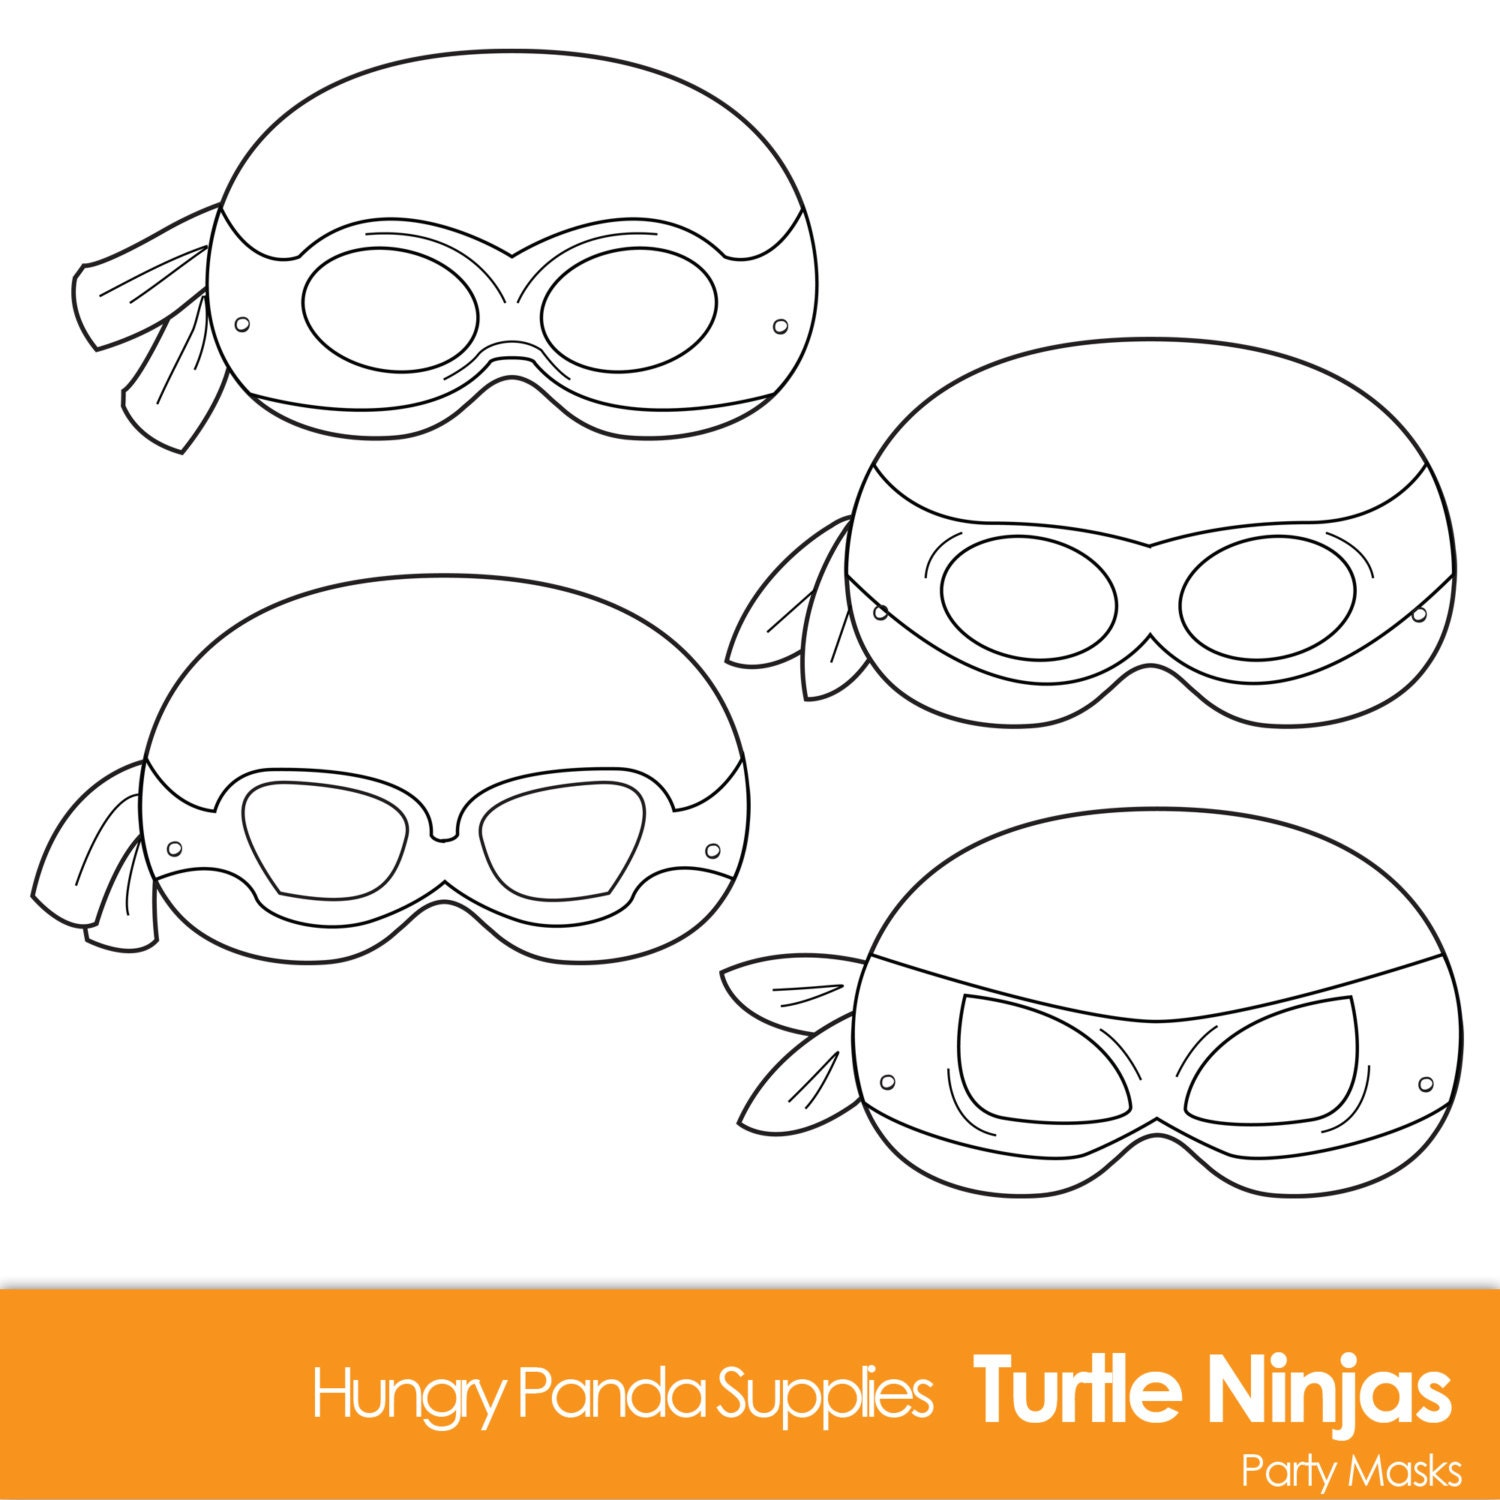 Peaceful image with regard to ninja turtle printable masks